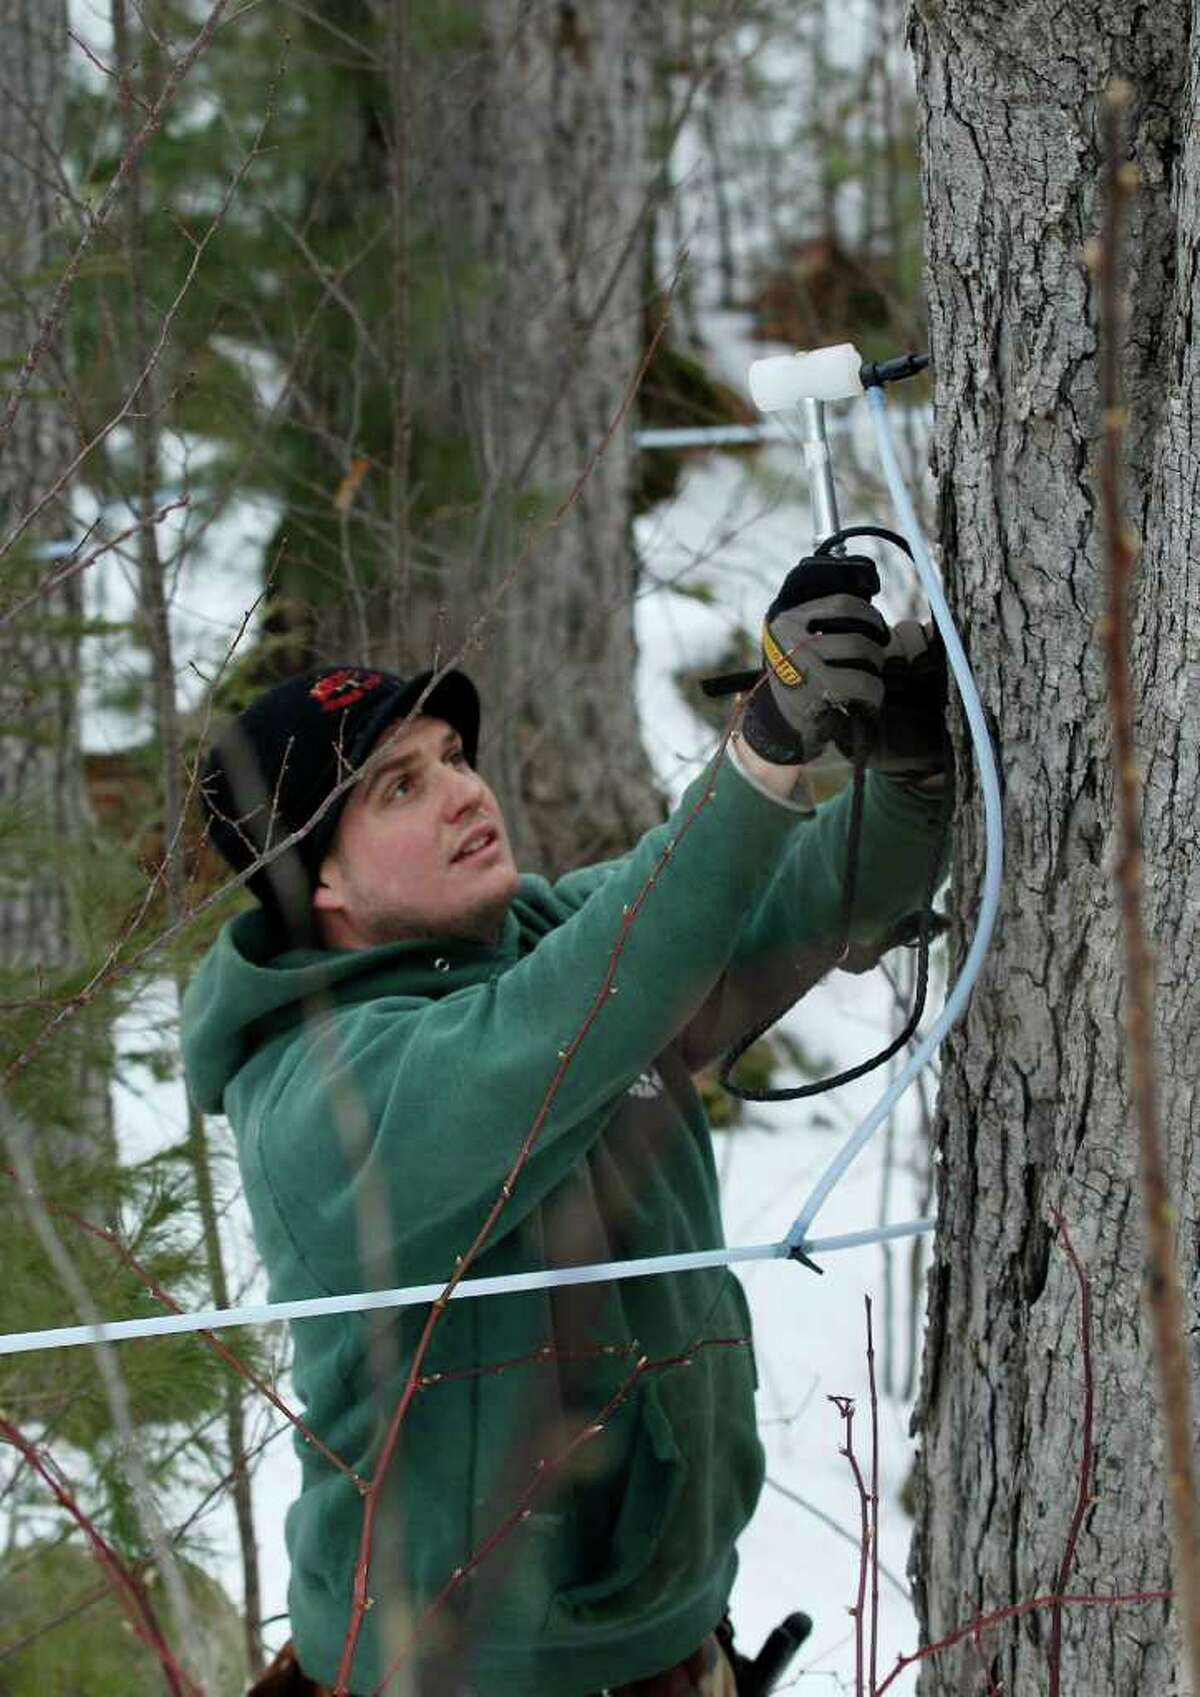 In this Feb. 14, 2012 photo, Ben Fisk hammers a tap and collection tube into the trunk of a maple tree at a timber stand in Newbury, N.H. An unusually mild winter across much of the Northeast has raised some concerns about whether the maple syrup crop is in danger. (AP Photo/Charles Krupa)